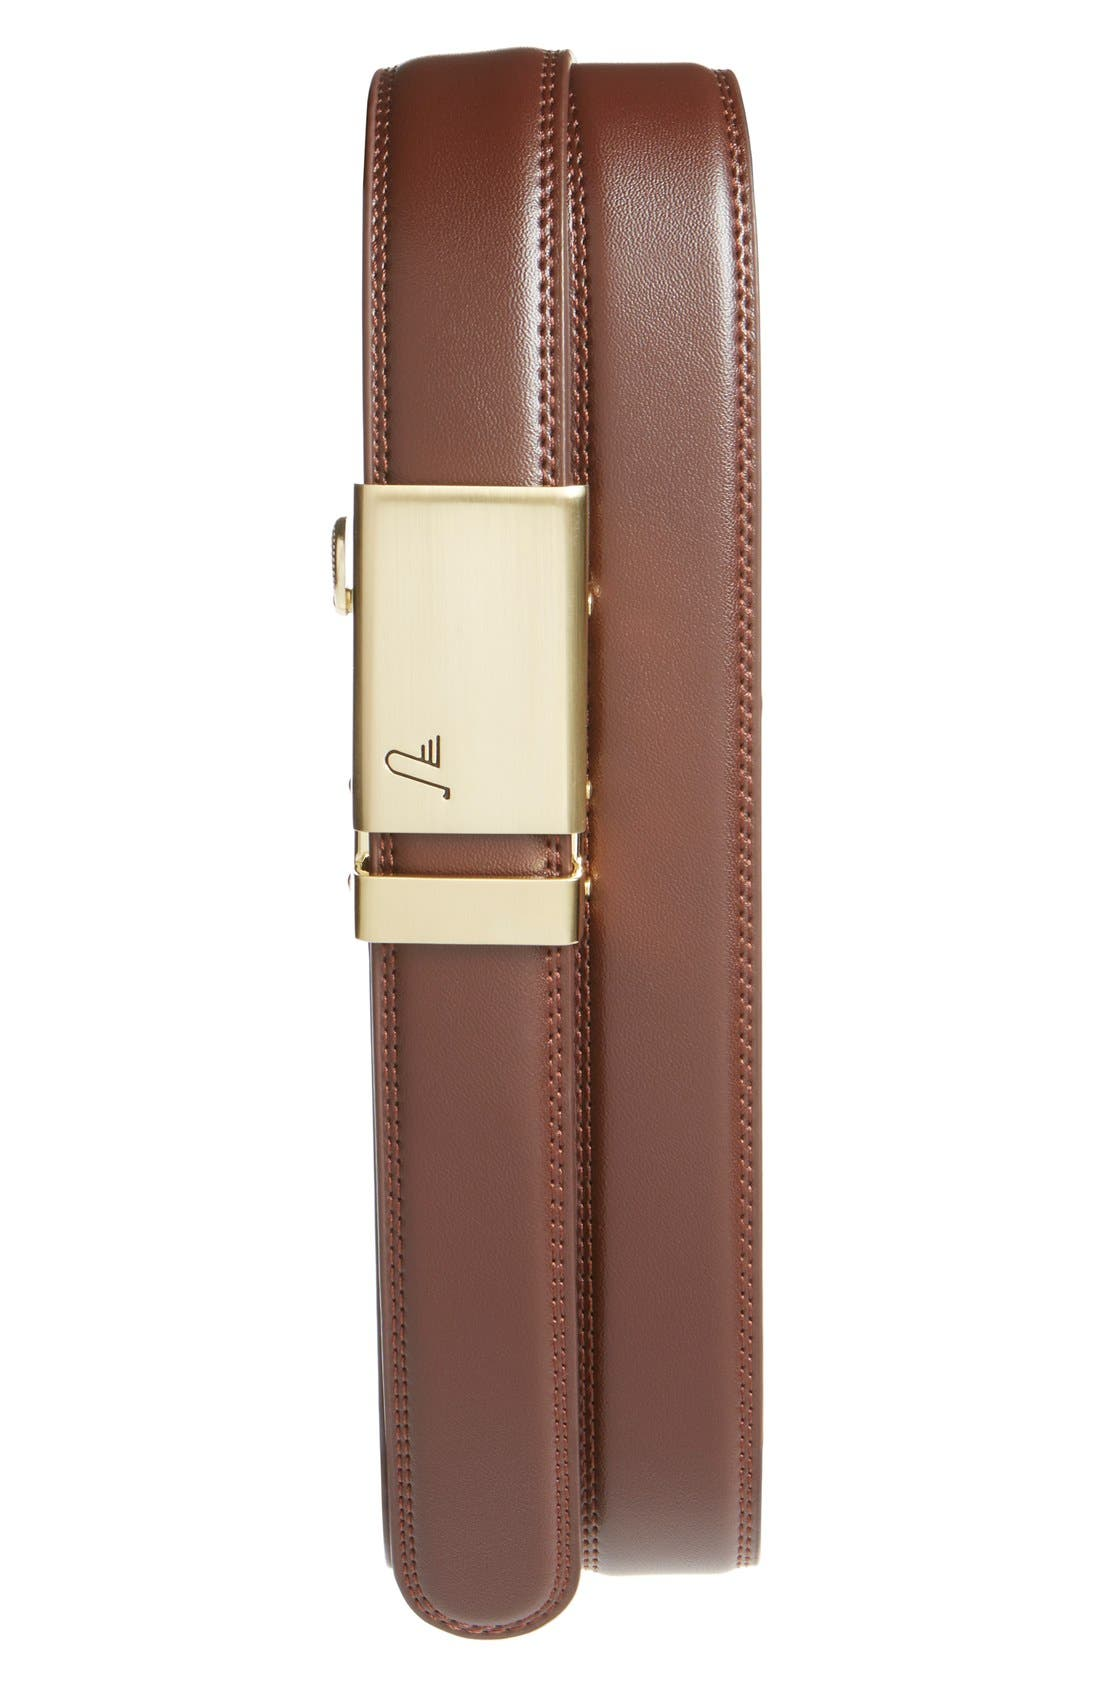 MISSION BELT 'TwentyFour' Leather Belt, Main, color, GOLD/ CHOCOLATE